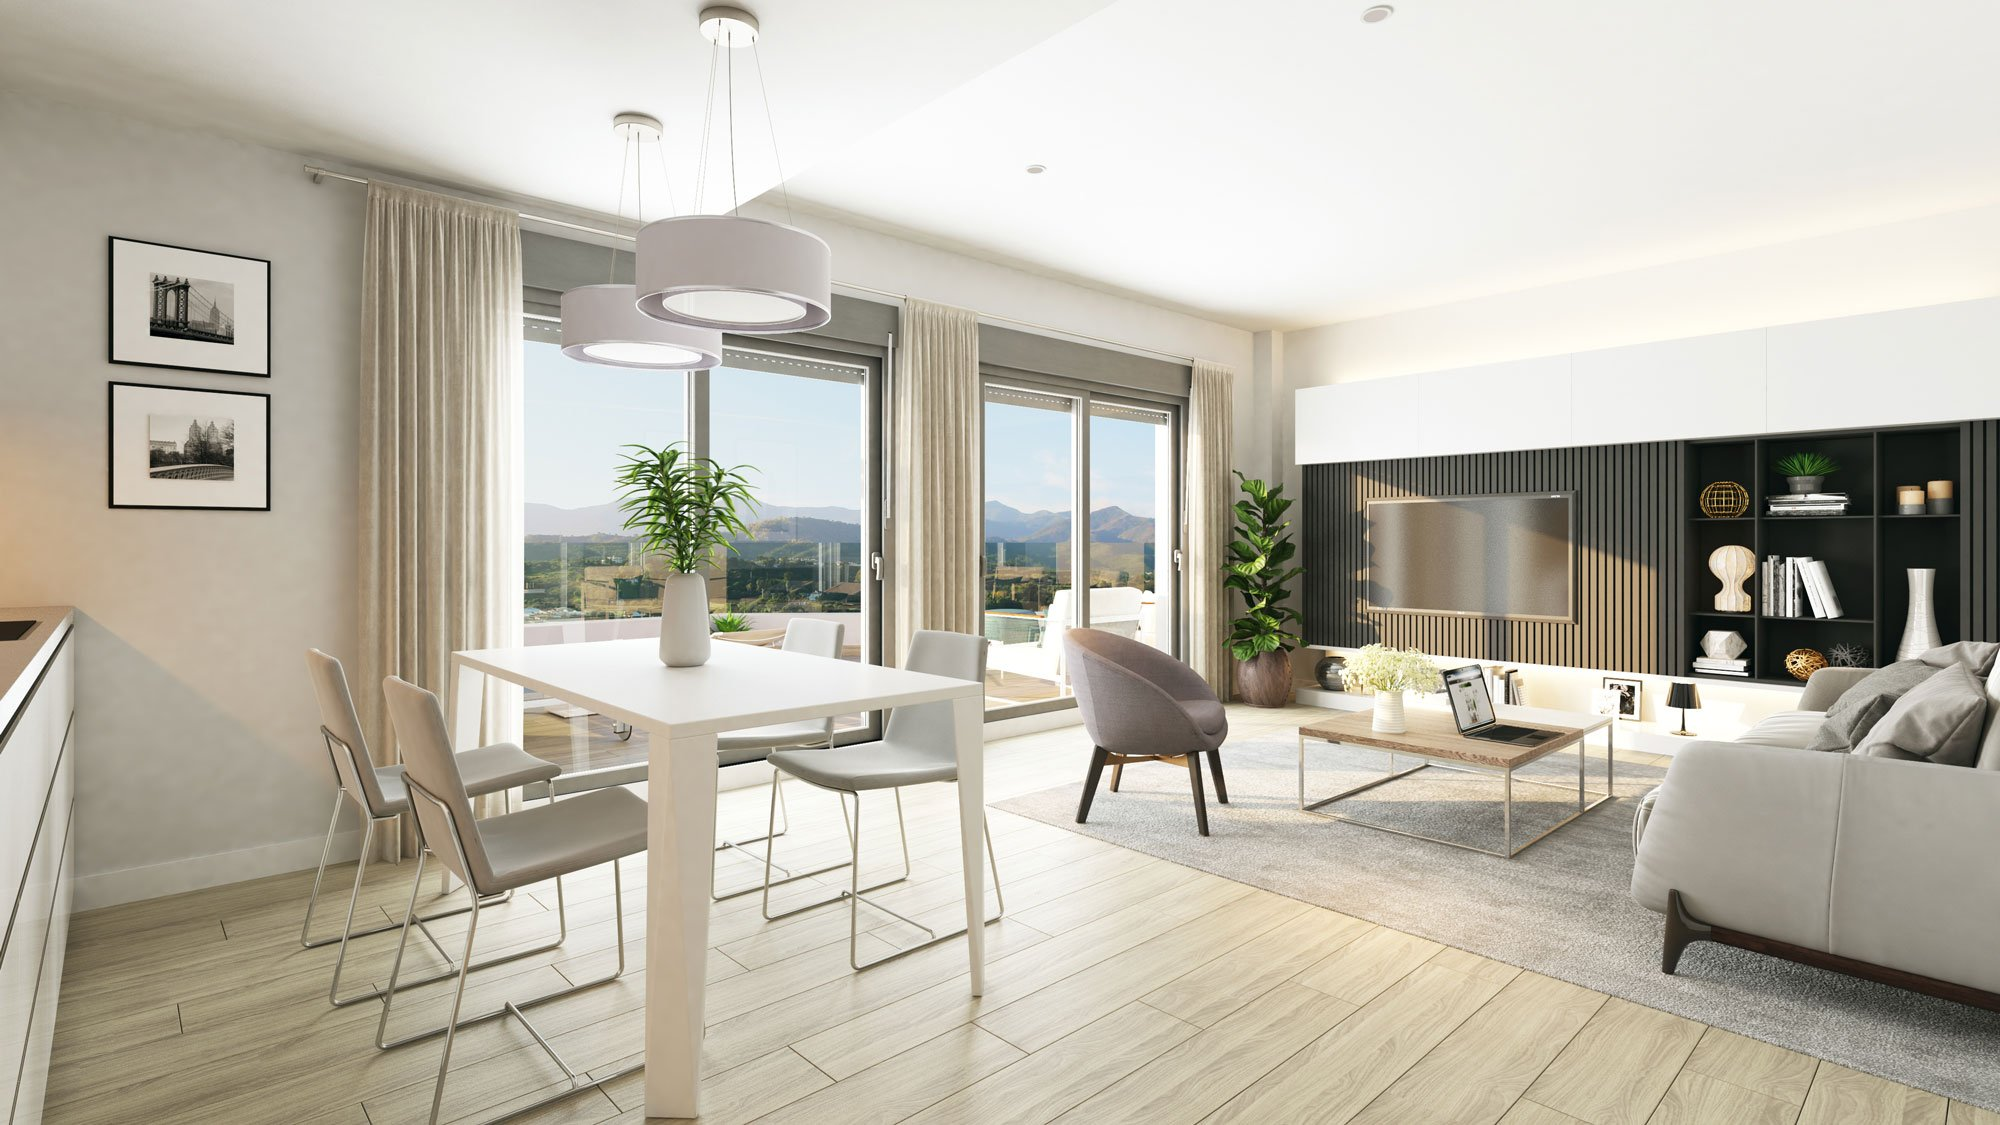 Oceana Gardens: Apartments on the New Gold Mile with attractive prices